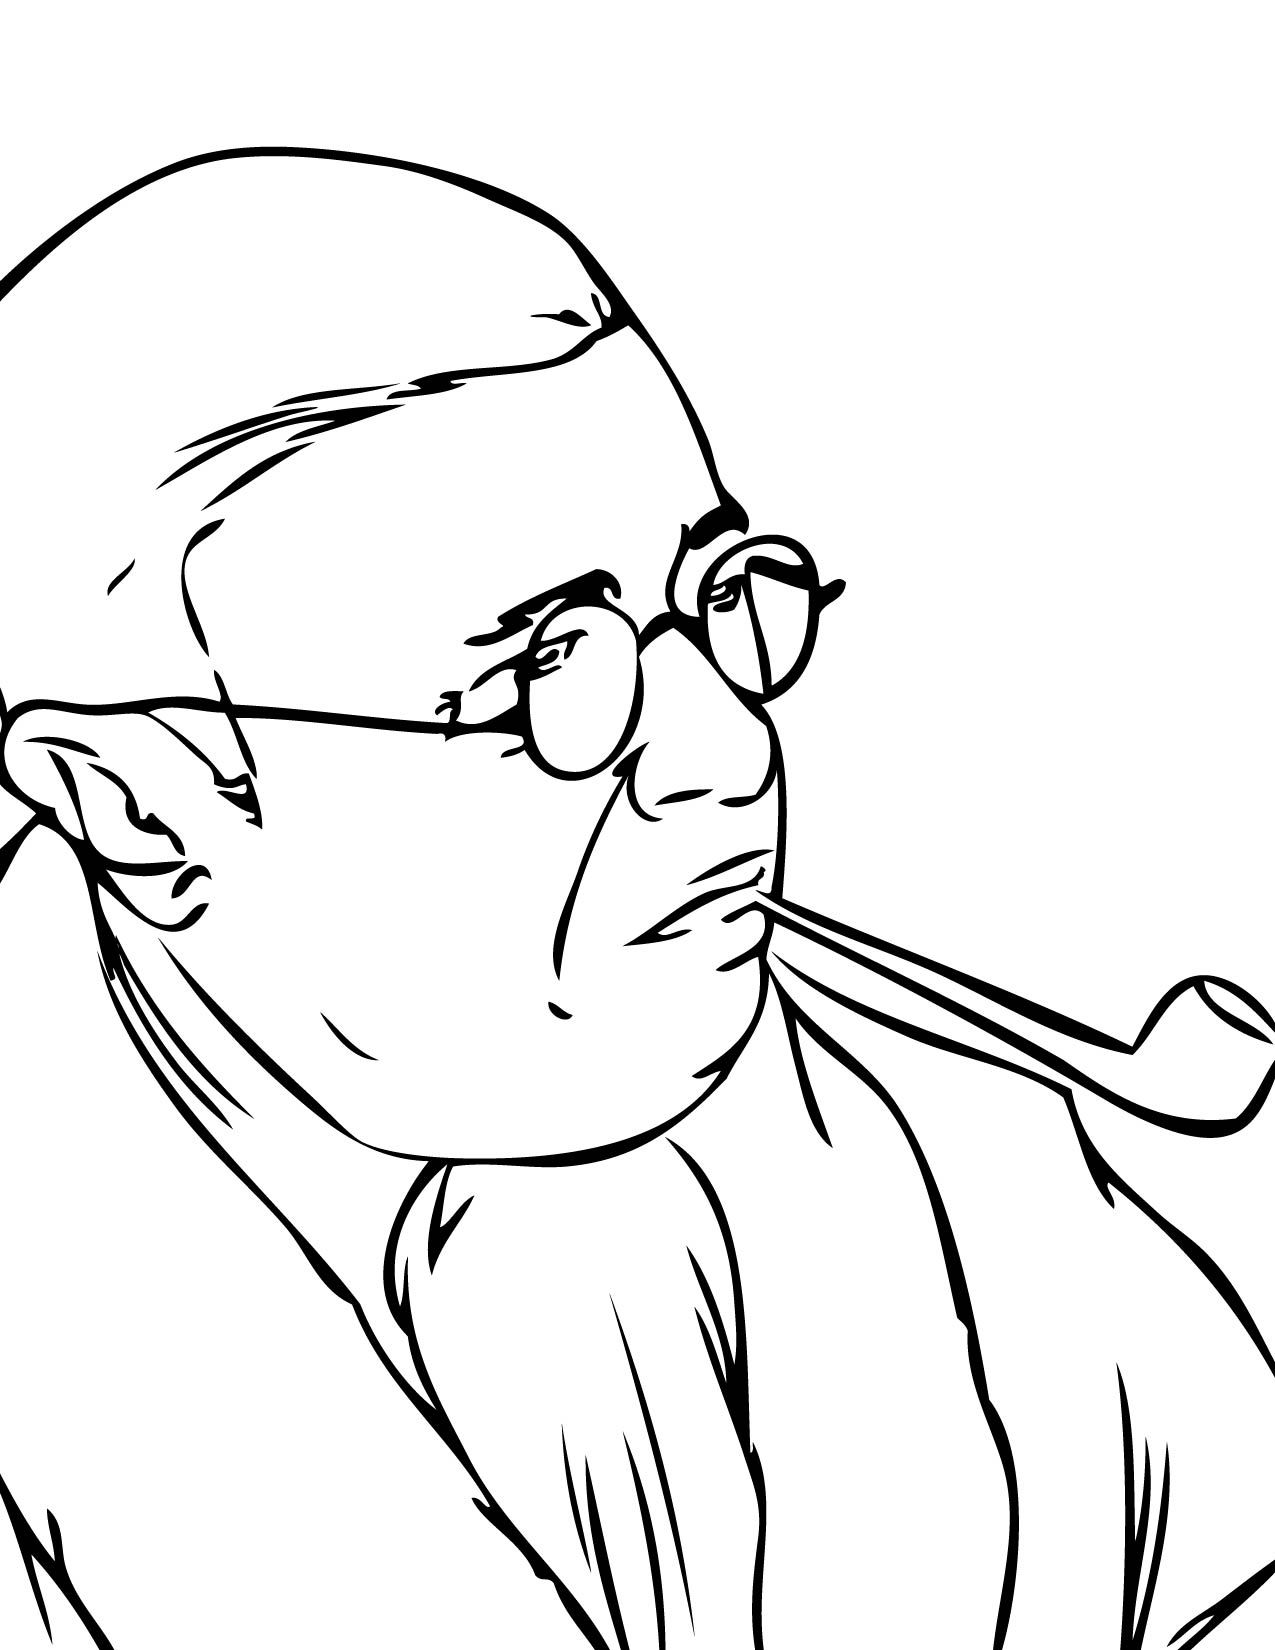 sartre coloring page history coloring sheets pinterest